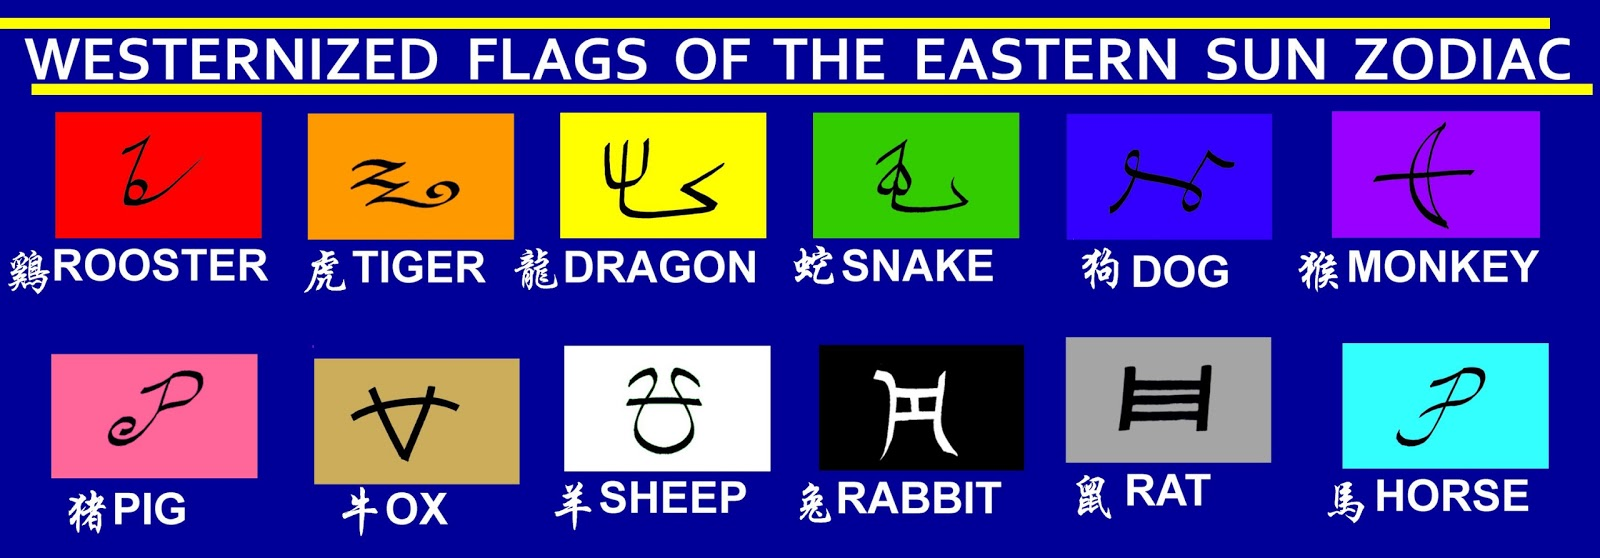 The voice of vexillology flags heraldry westernized flag chart this is the westernized chinese zodiac wheel both the eastern and western zodiac wheels fit into a similar 12 beat rhythm yet set their tempo on the two nvjuhfo Images